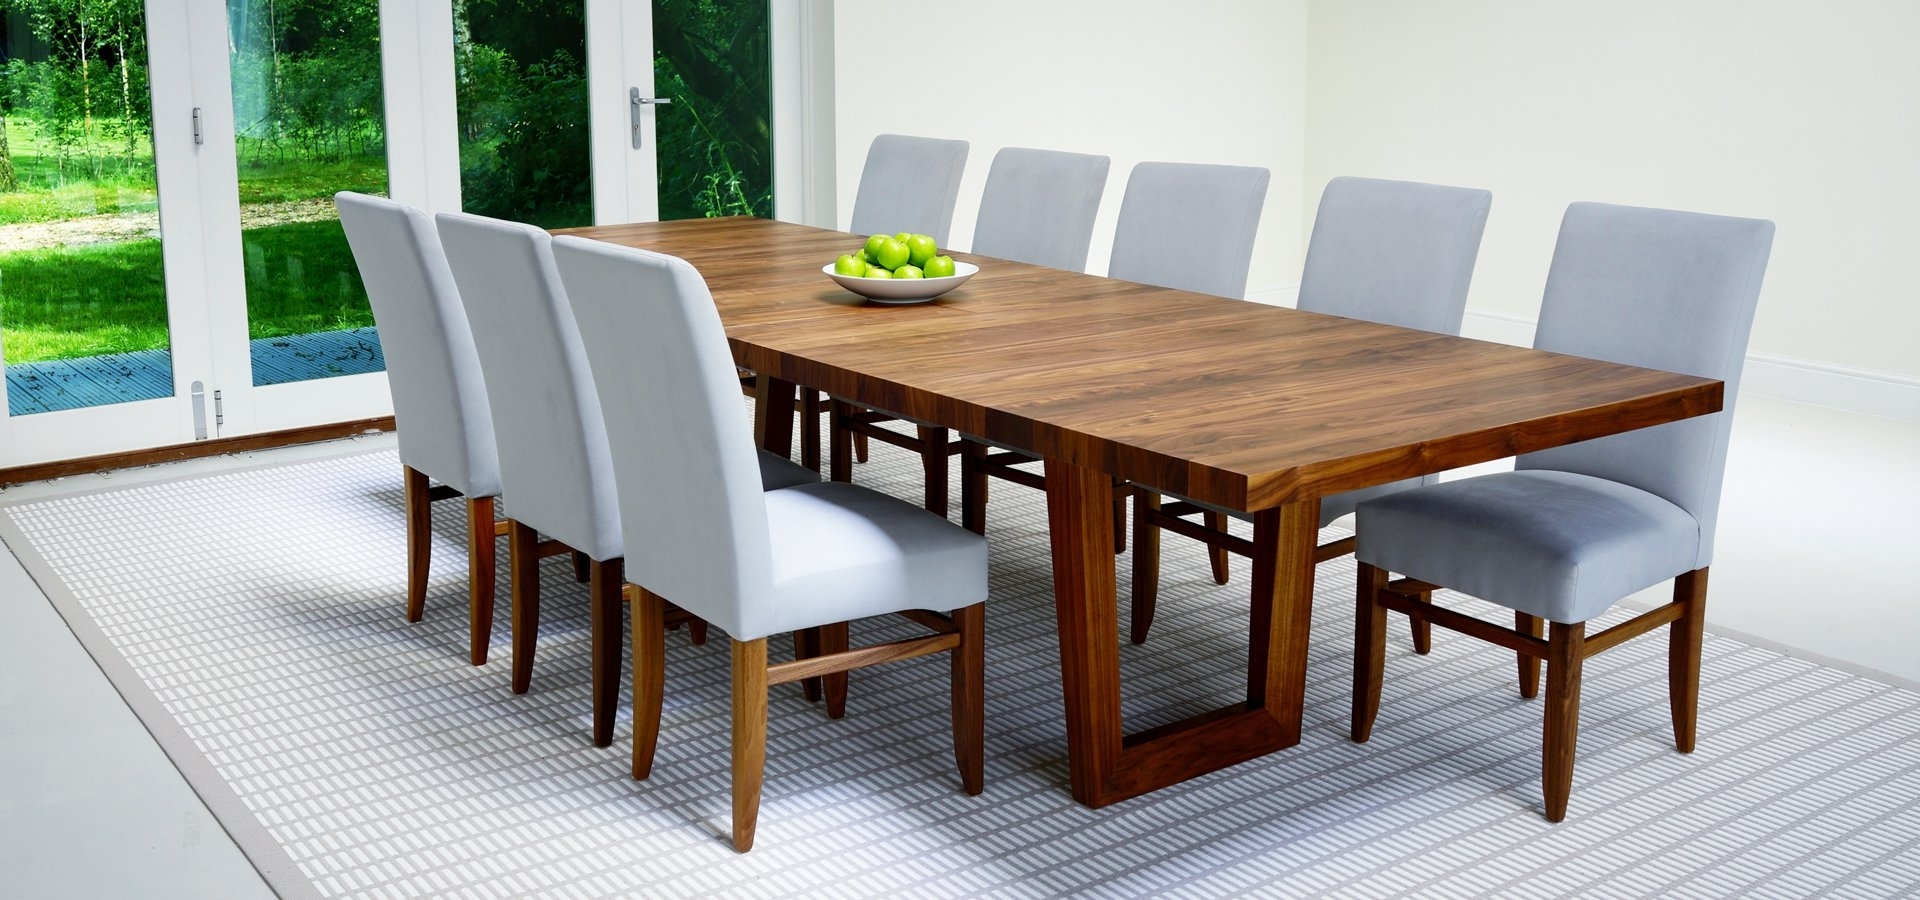 Widely Used Modern Extendable Dining Table Set – Castrophotos For Extending Dining Tables Sets (View 25 of 25)